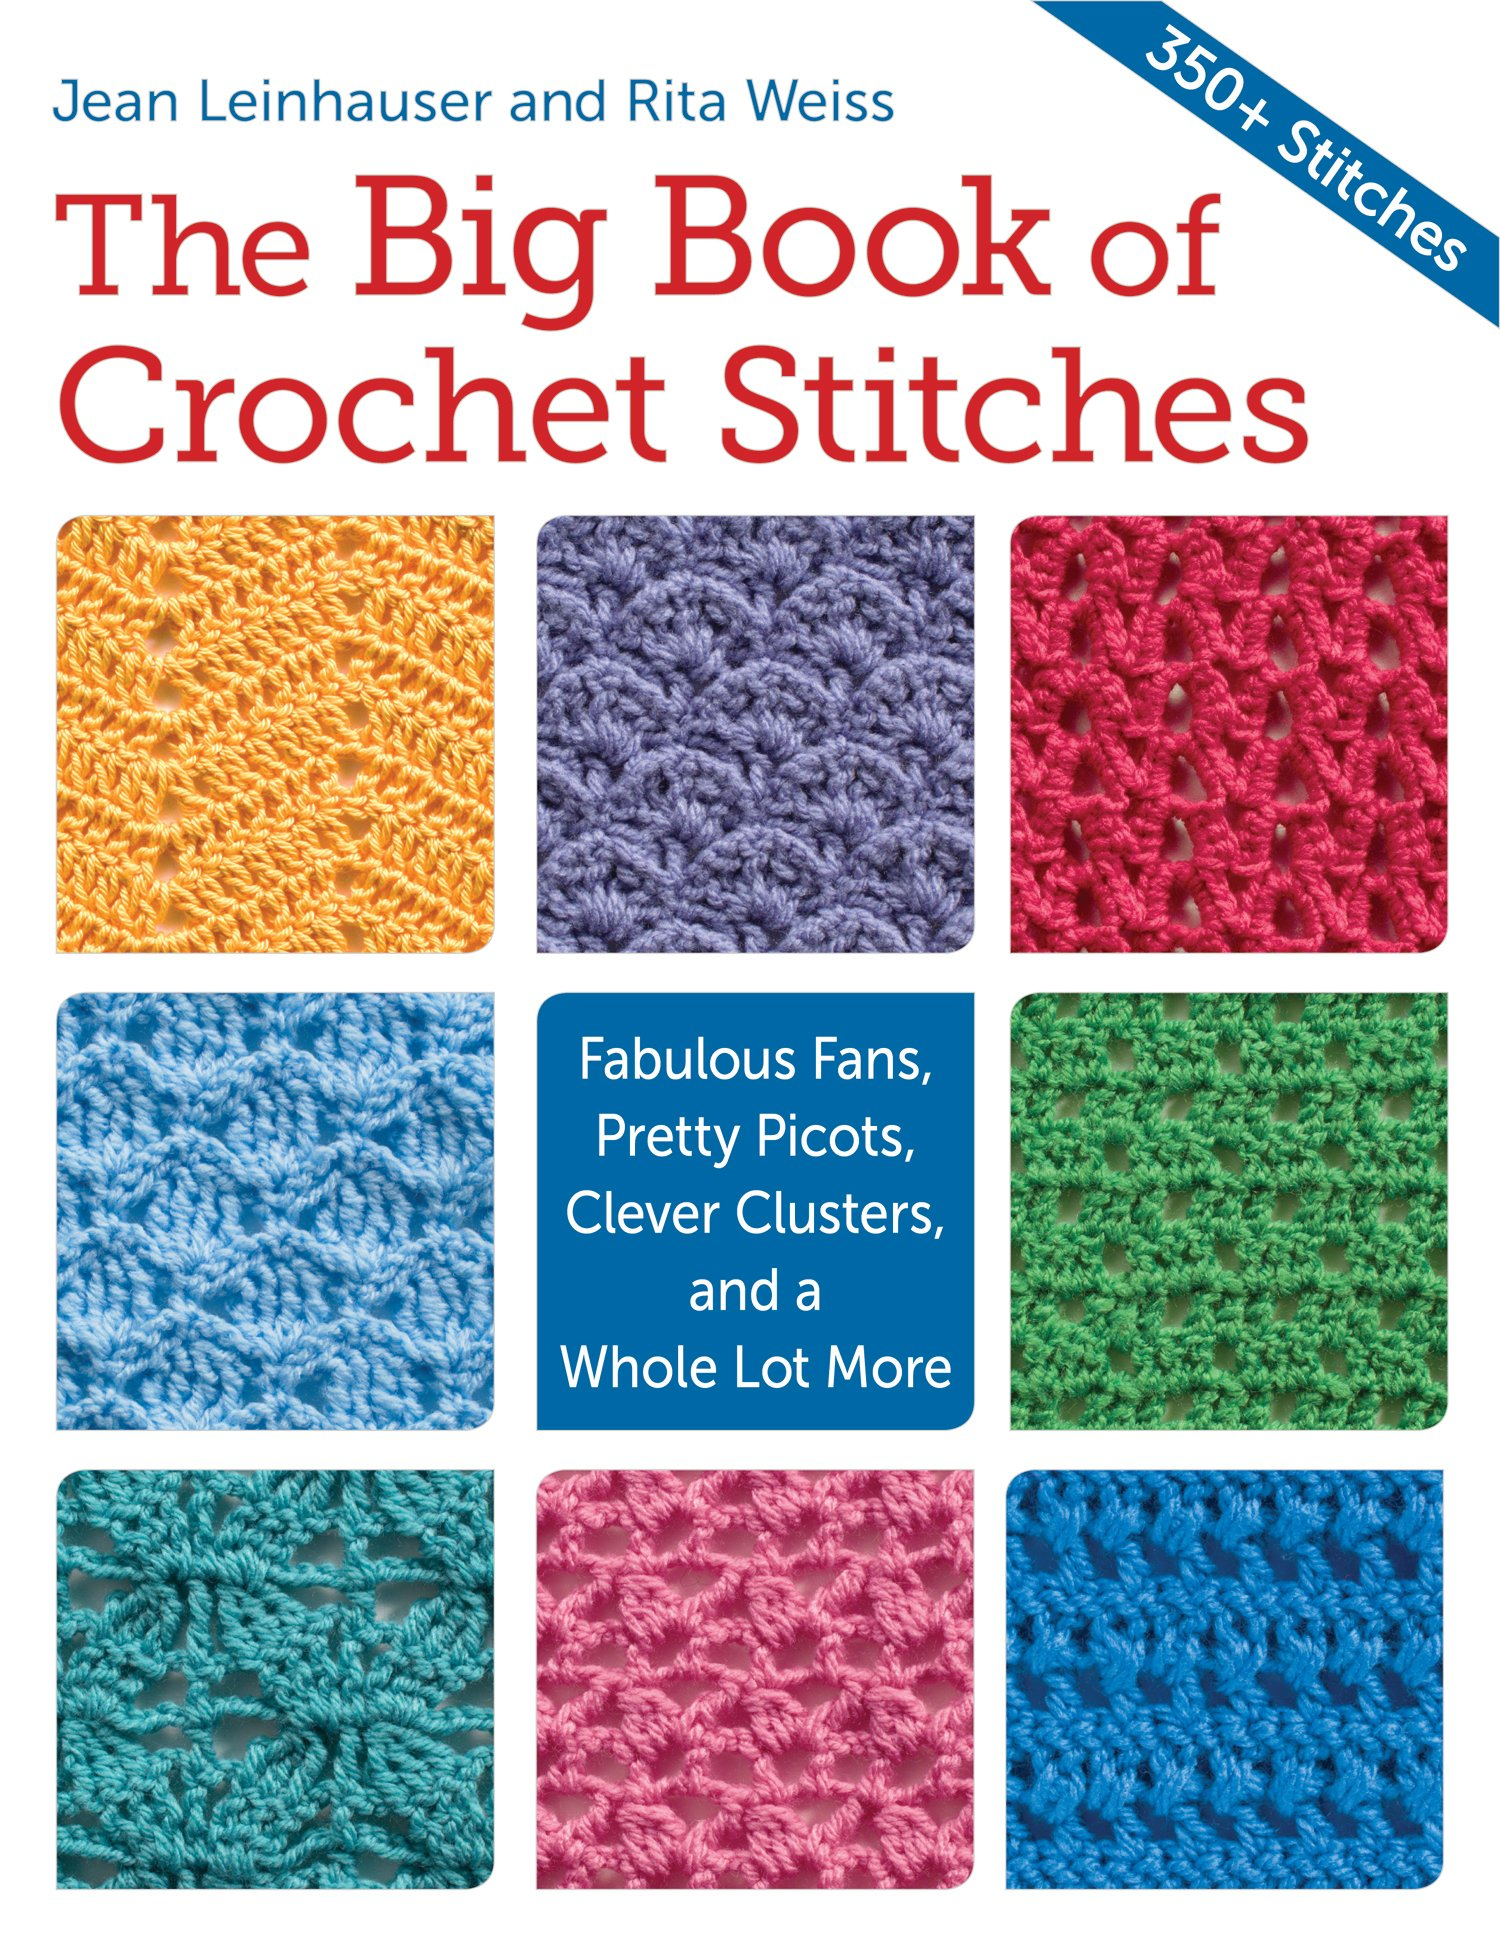 Crochet Stitches With Images : The Big Book of Crochet Stitches ? Oombawka Design Crochet